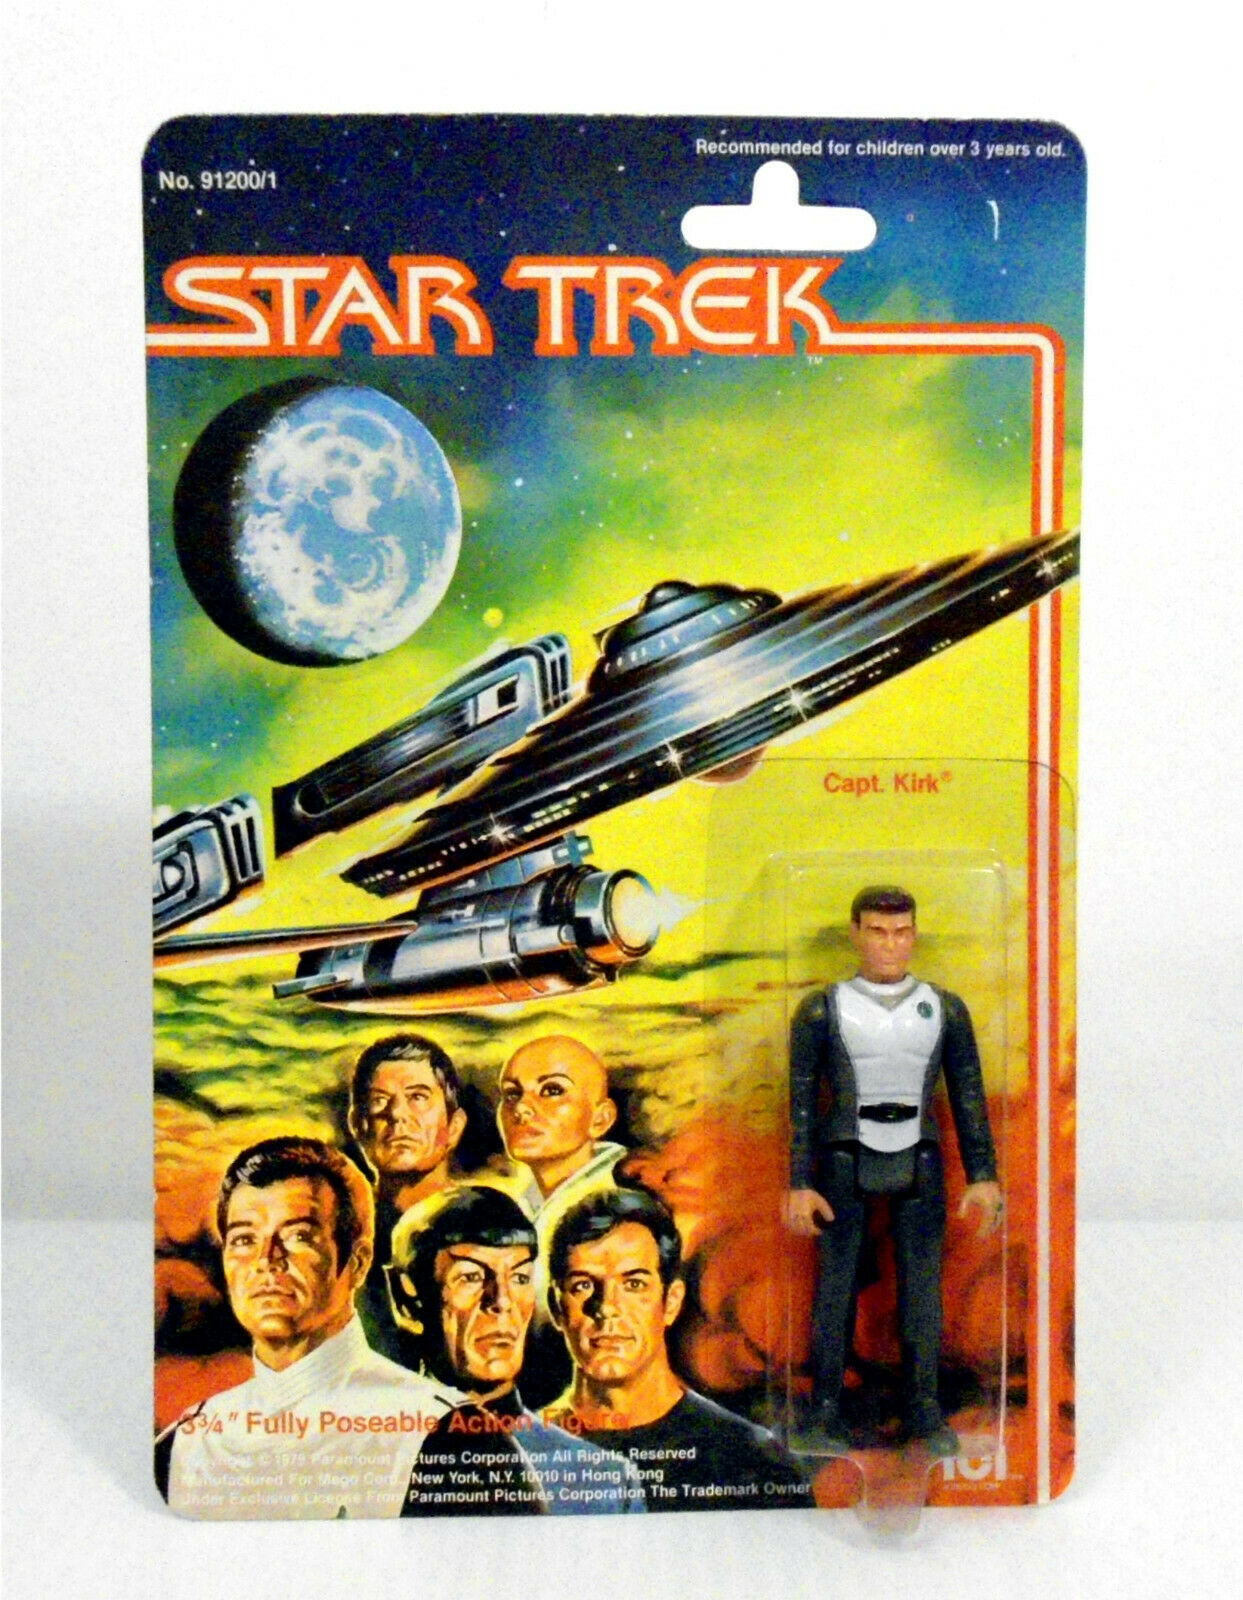 Star Trek the Motion Picture figurine Captain Kirk 1979 MEGO Comme neuf on Card